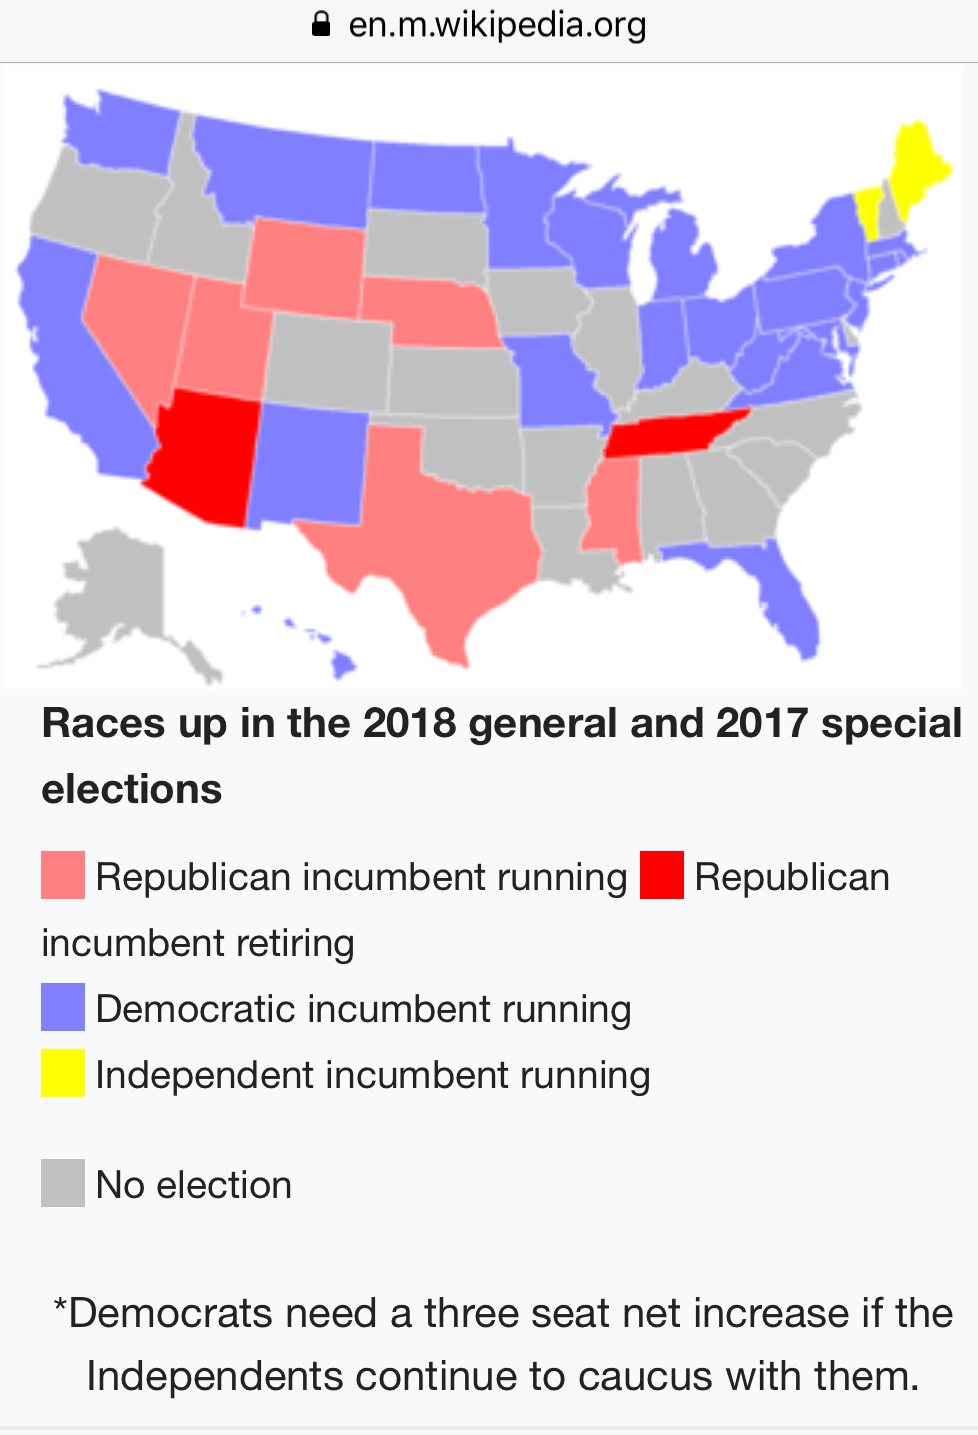 wikipedia org s map of the 2018 schedule for u s senate elections among democratic incumbent u s senators up for 2018 are